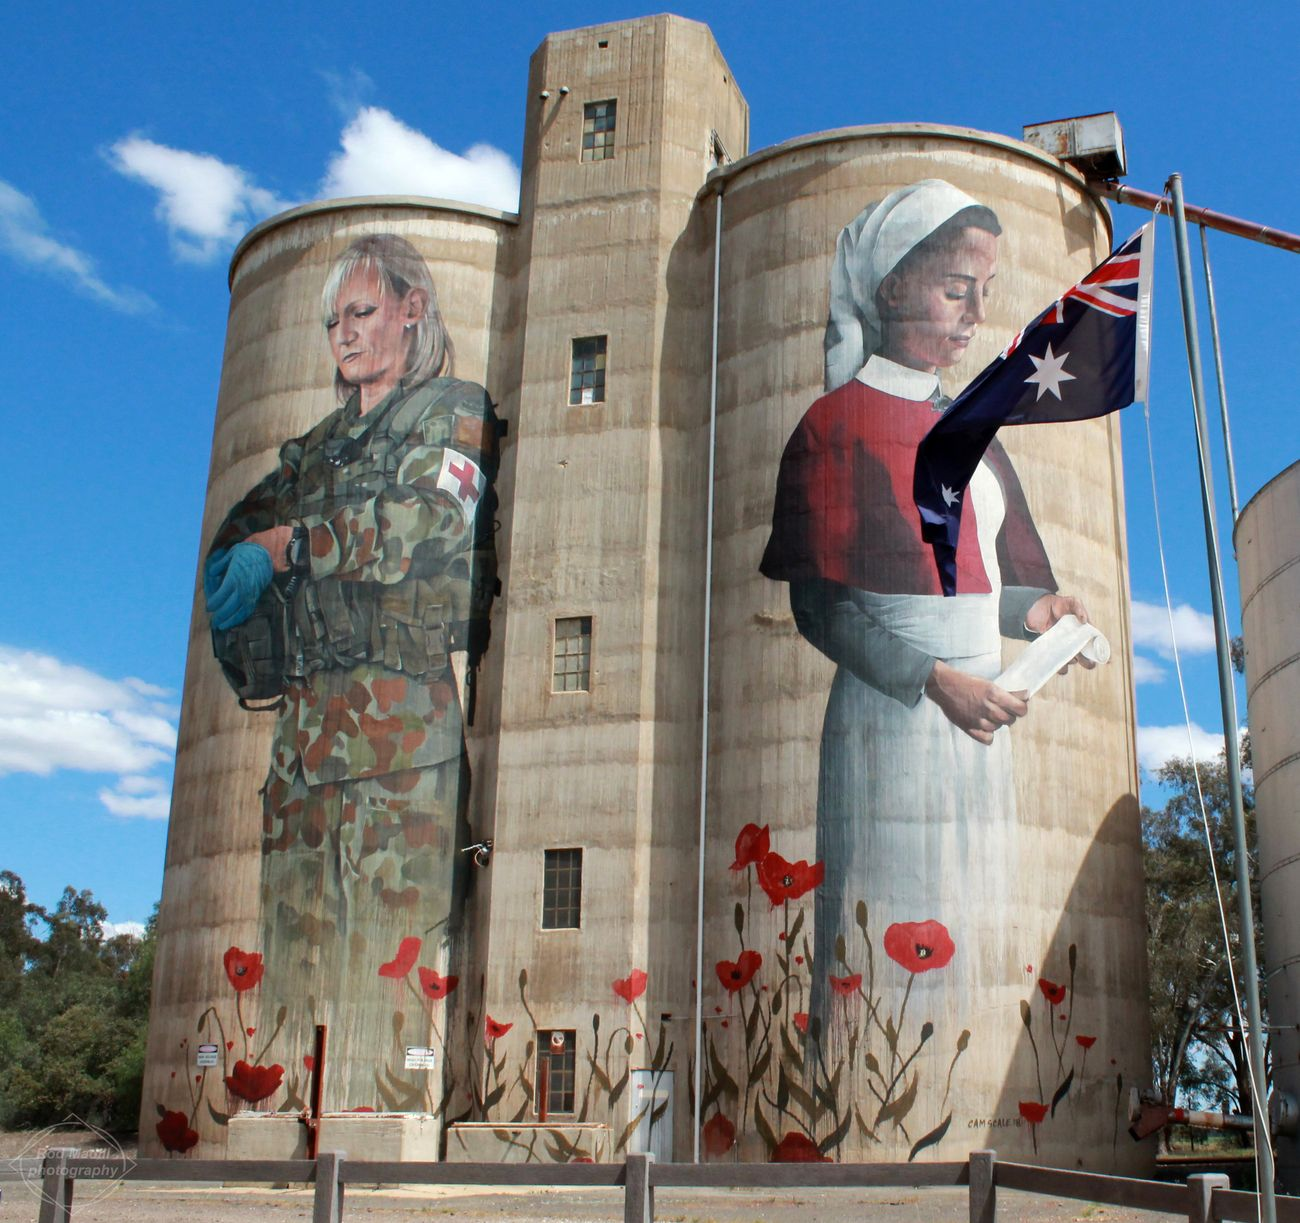 Painted silos at Devenish Victoria,the painting commemorates the role of Australian women in war from nurses of WW1 to the front line medics of today.